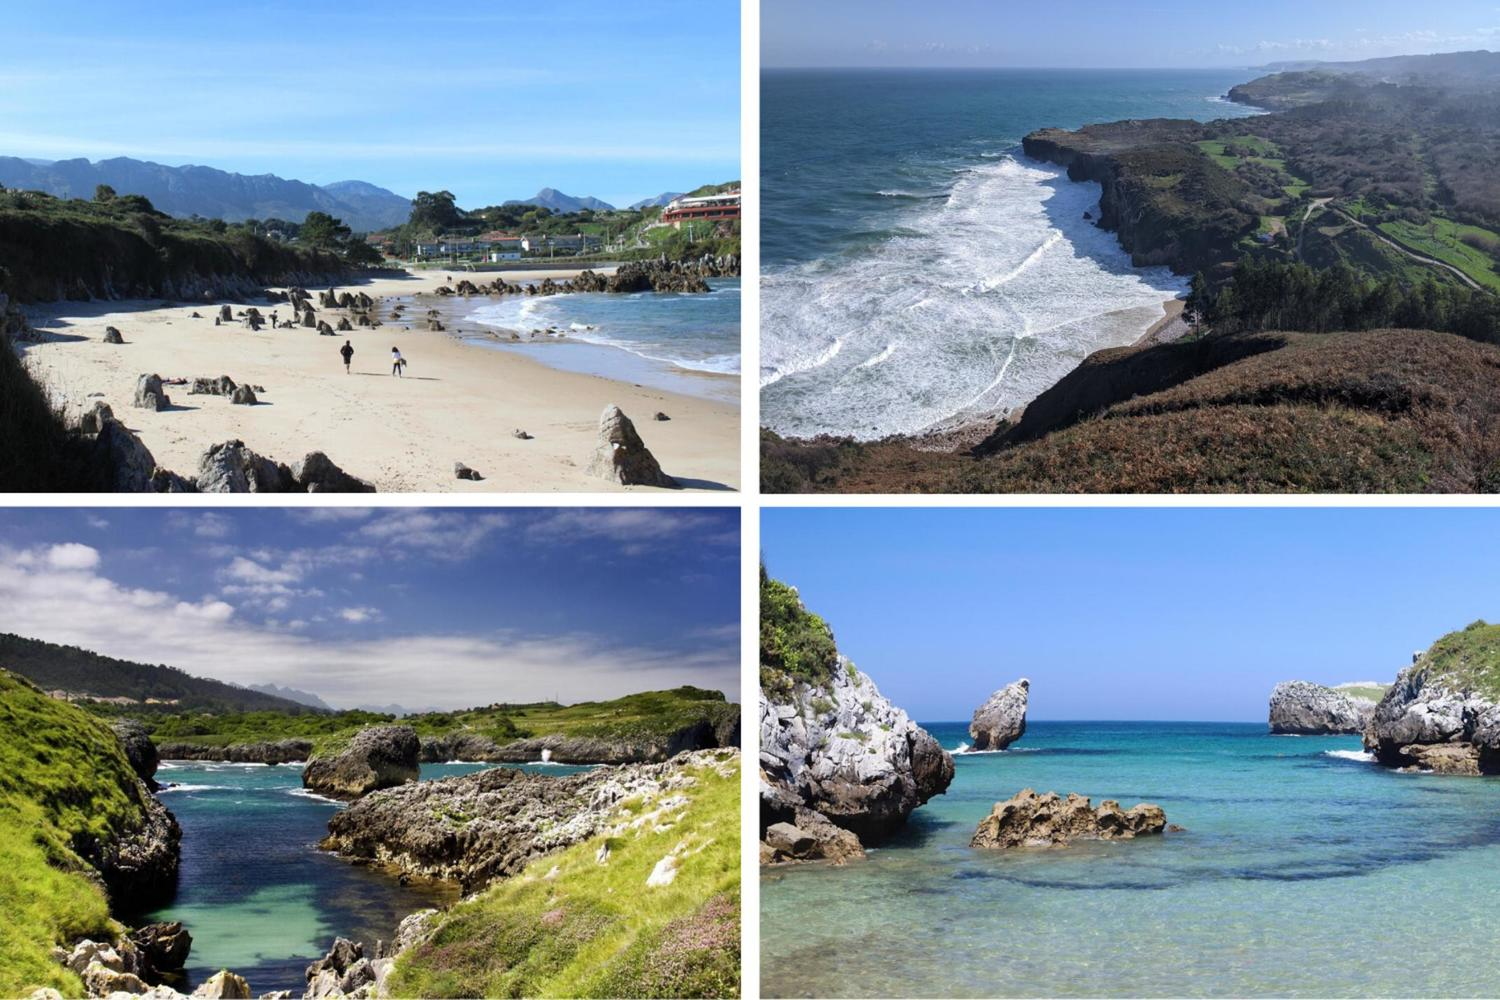 Snapshots of the Costa Verde around Llanes